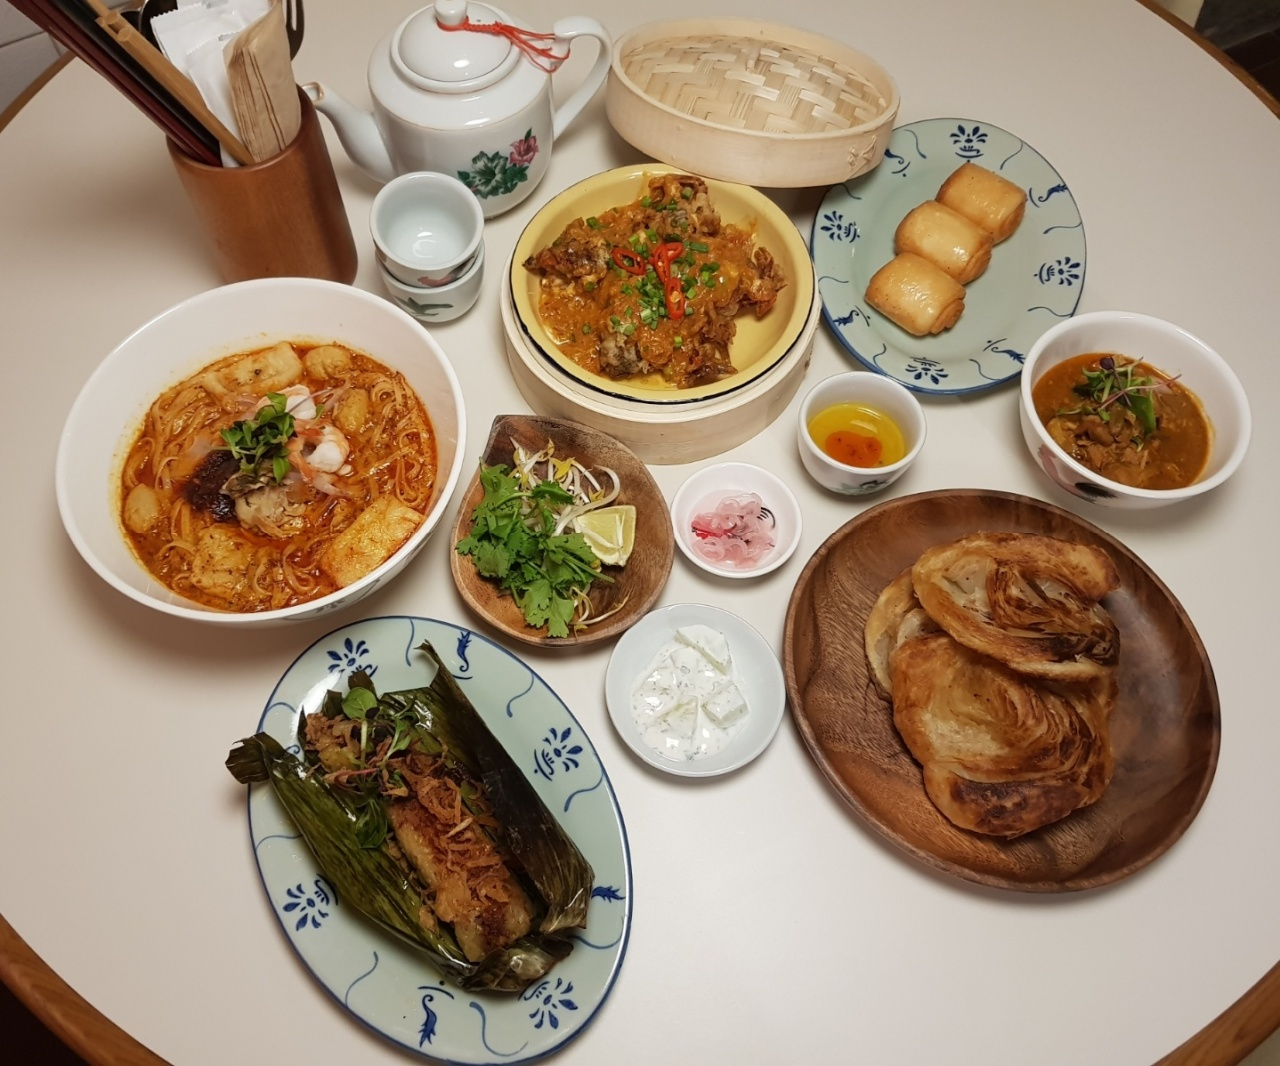 Clockwise from top left: Nyonya laksa, chili crab with fried mantou buns, chicken curry and roti canai and pulut panggang (Choi Ji-won/The Korea Herald)